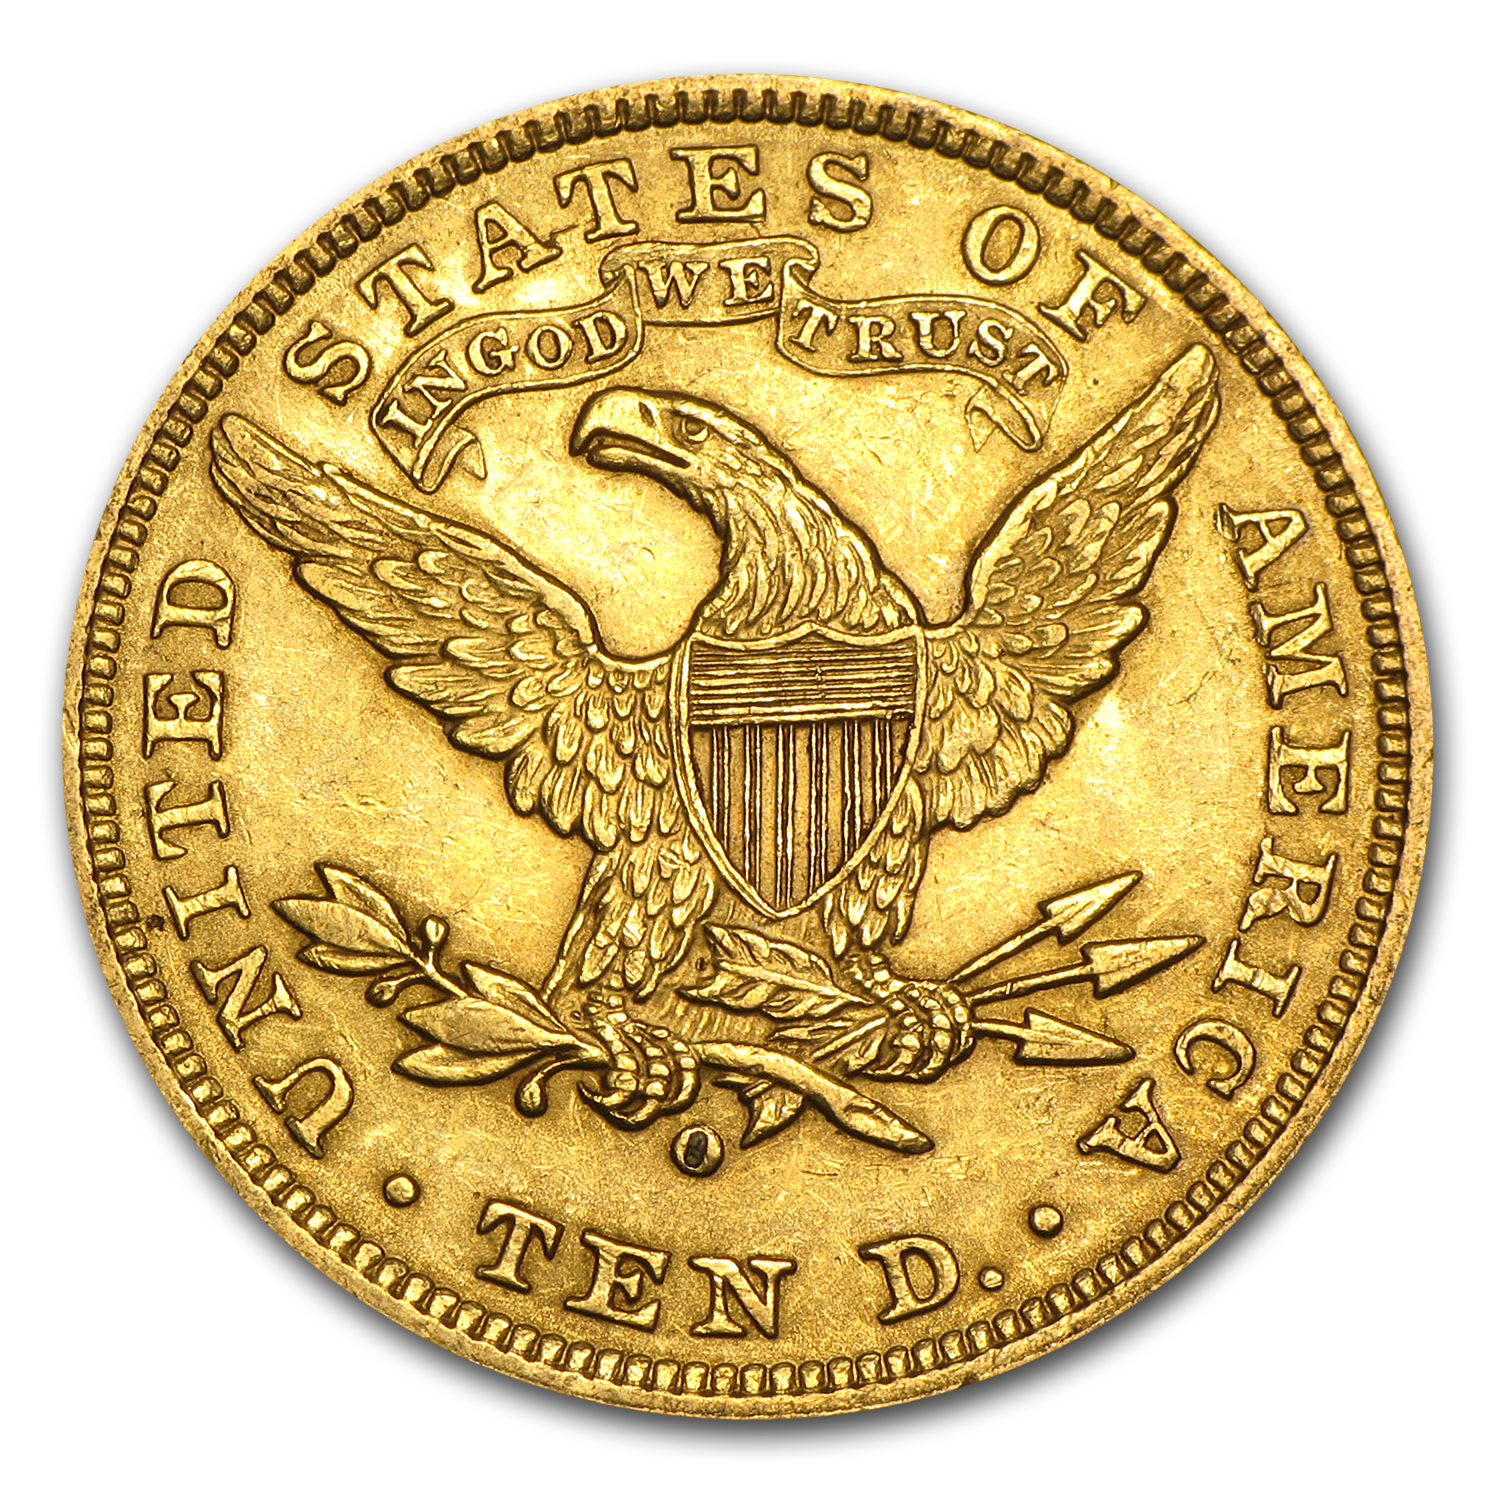 1906-O $10 Liberty Gold Eagle - AU